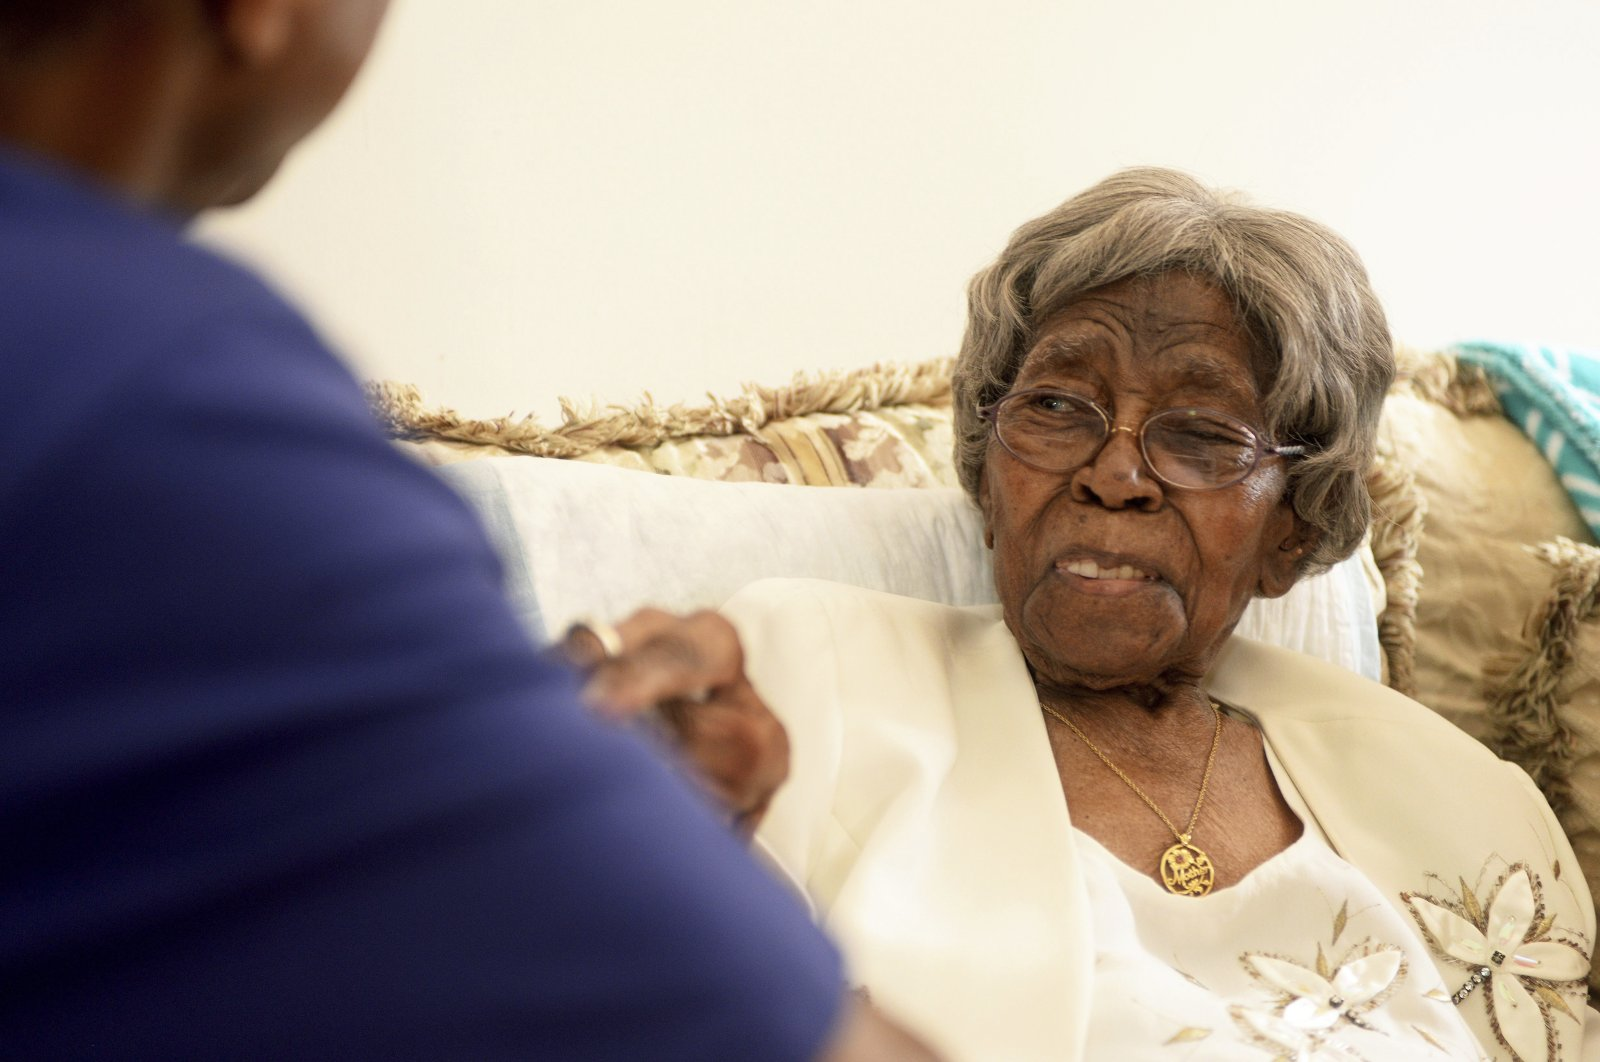 """Roosevelt Patterson greets his grandmother Hester """"Granny"""" Ford during Ford's 111th birthday party, North Carolina, U.S., Aug. 13, 2016. (AP Photo)"""